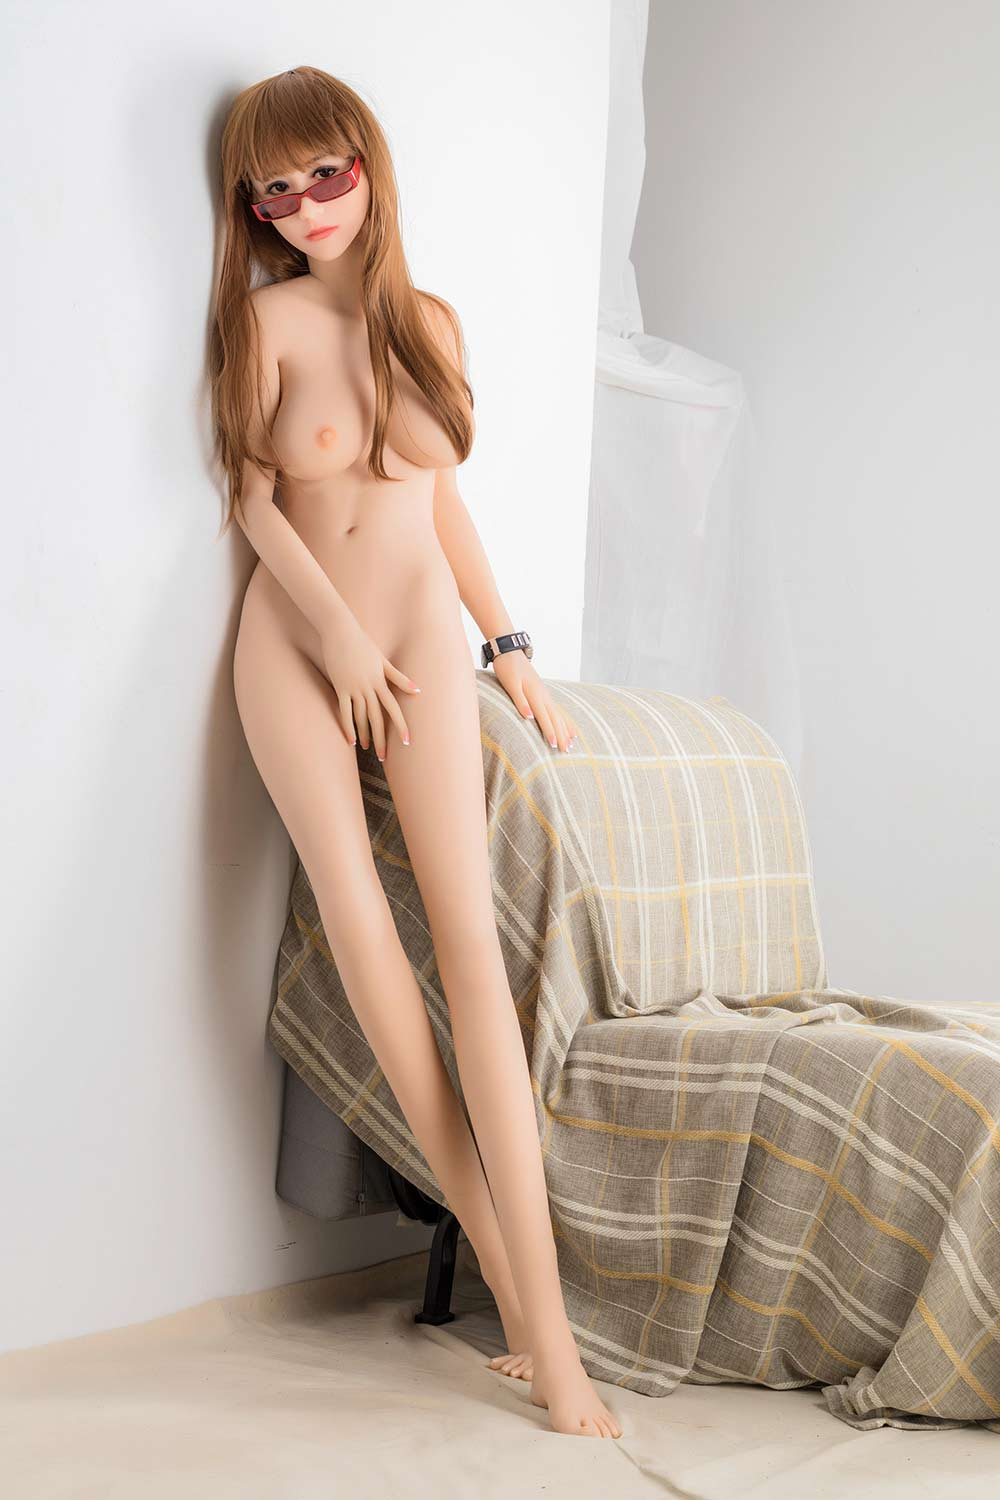 Sex doll with hands on sofa armrests